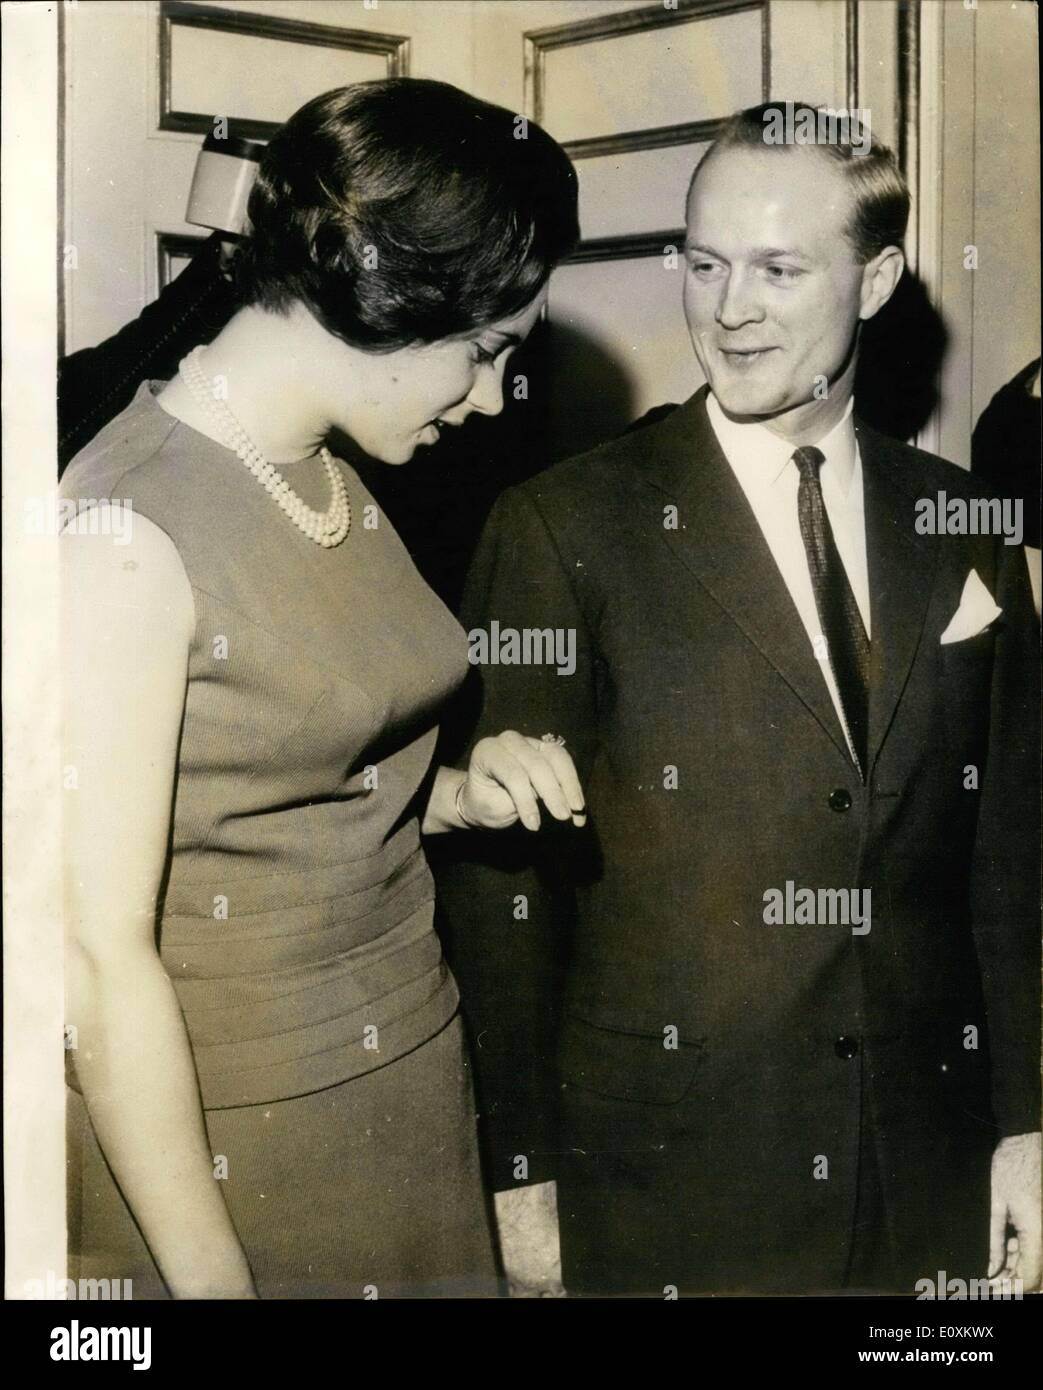 Mar. 14, 1967 - : Princess Benedikte, second oldest daughter of the King and Queen Denmark, has become engaged to German Prince - Stock Image